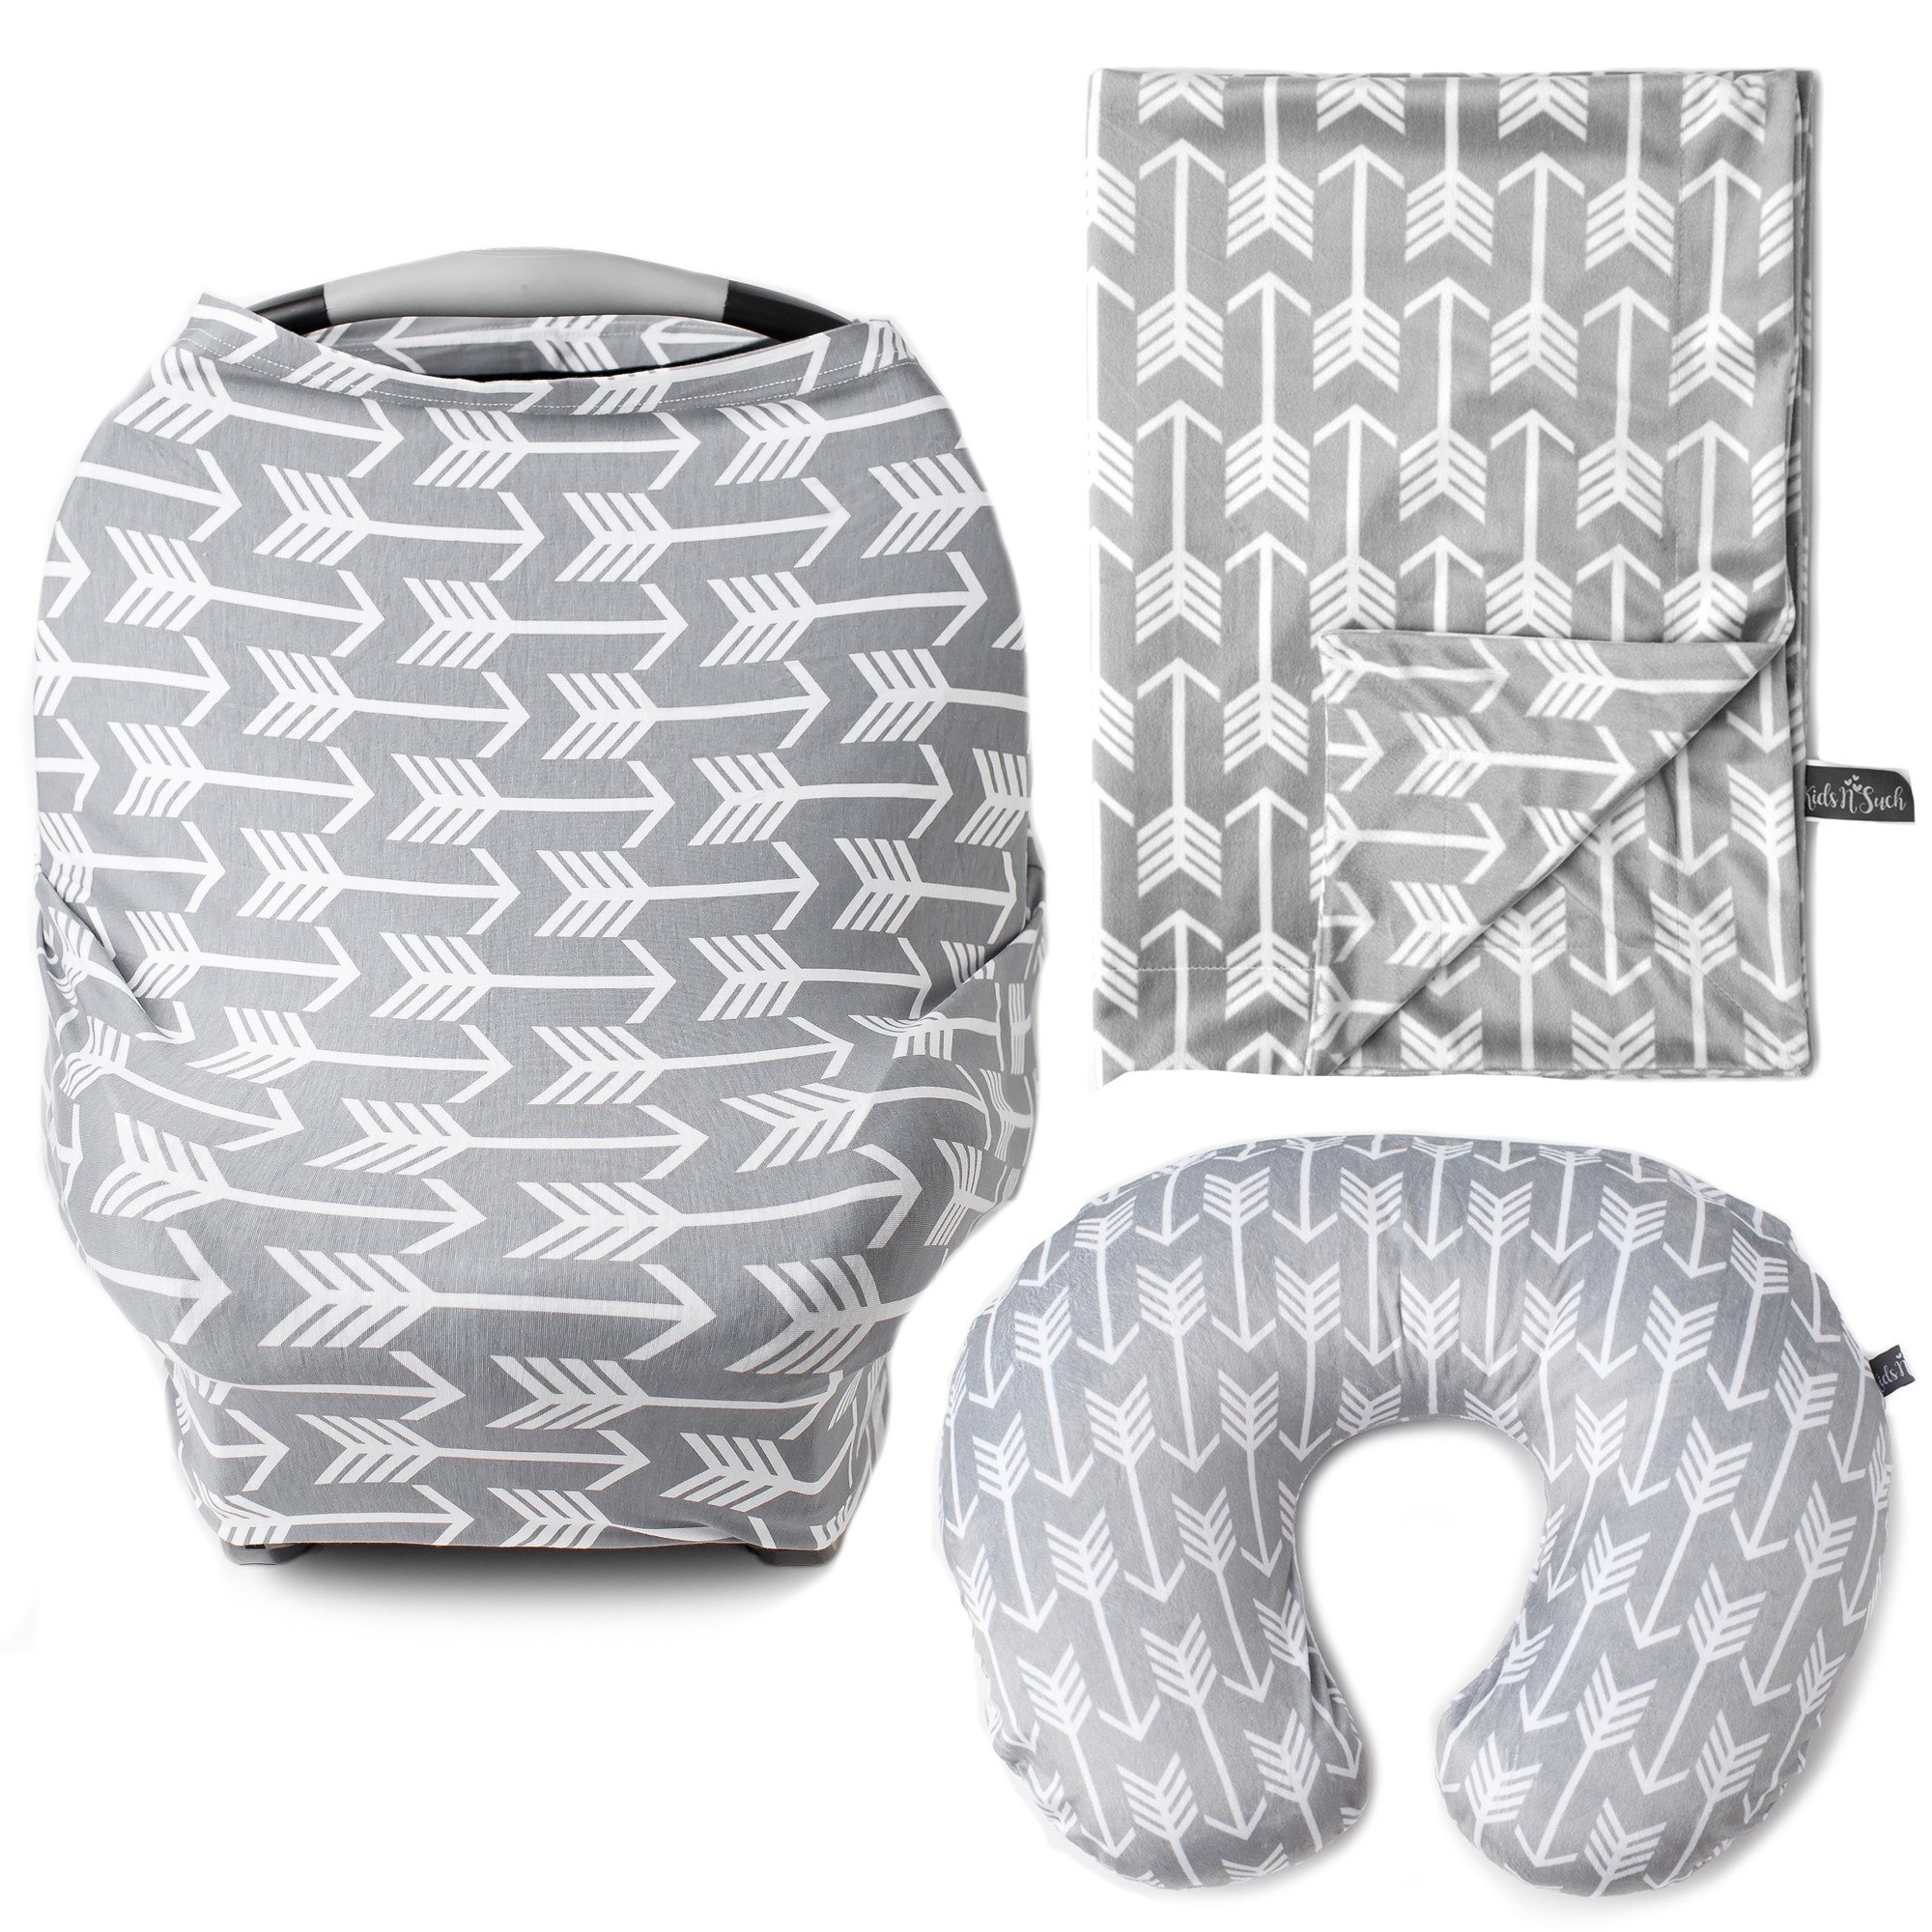 Kids N' Such 3-Pack Bundle of Arrow Multi Use Cover, Nursing Pillow Cover, and Baby Blanket